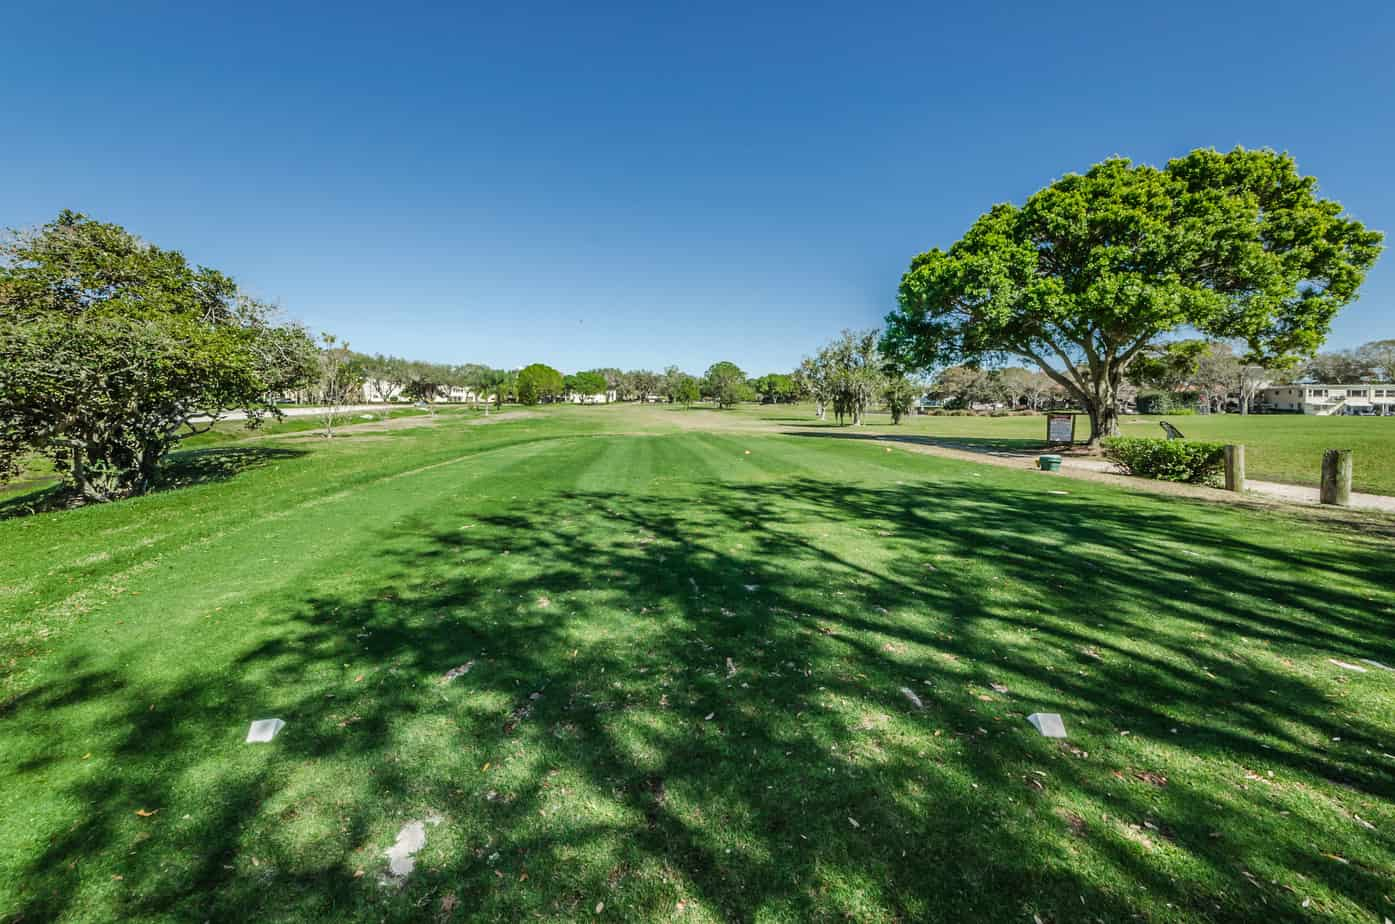 38-2285-Israeli-Dr-#17-Clearwater-Fl-33763-Golf Course5